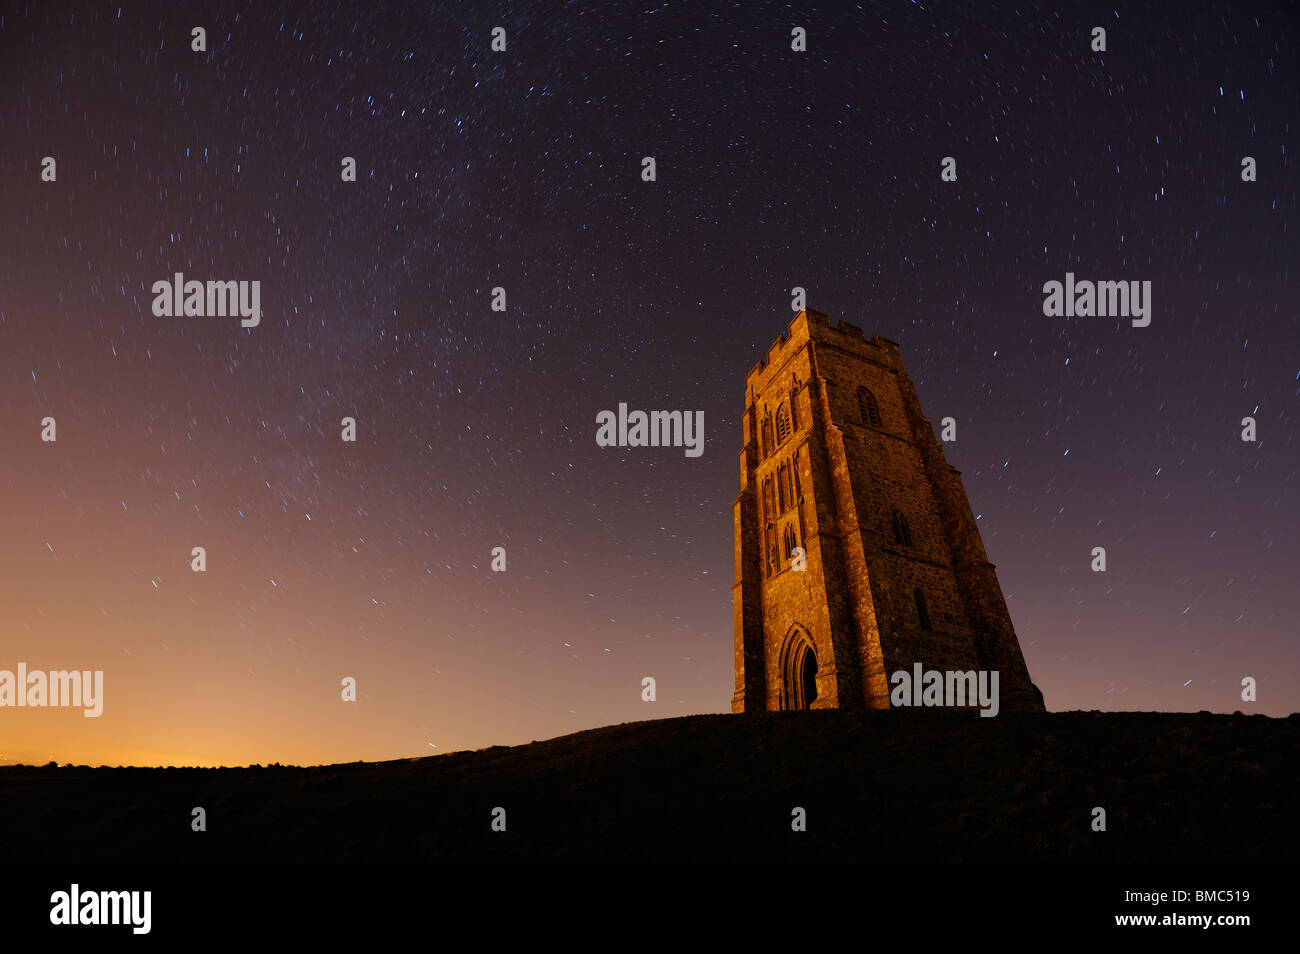 Glastonbury Tor lit by light pollution and with a starry night sky behind it. - Stock Image